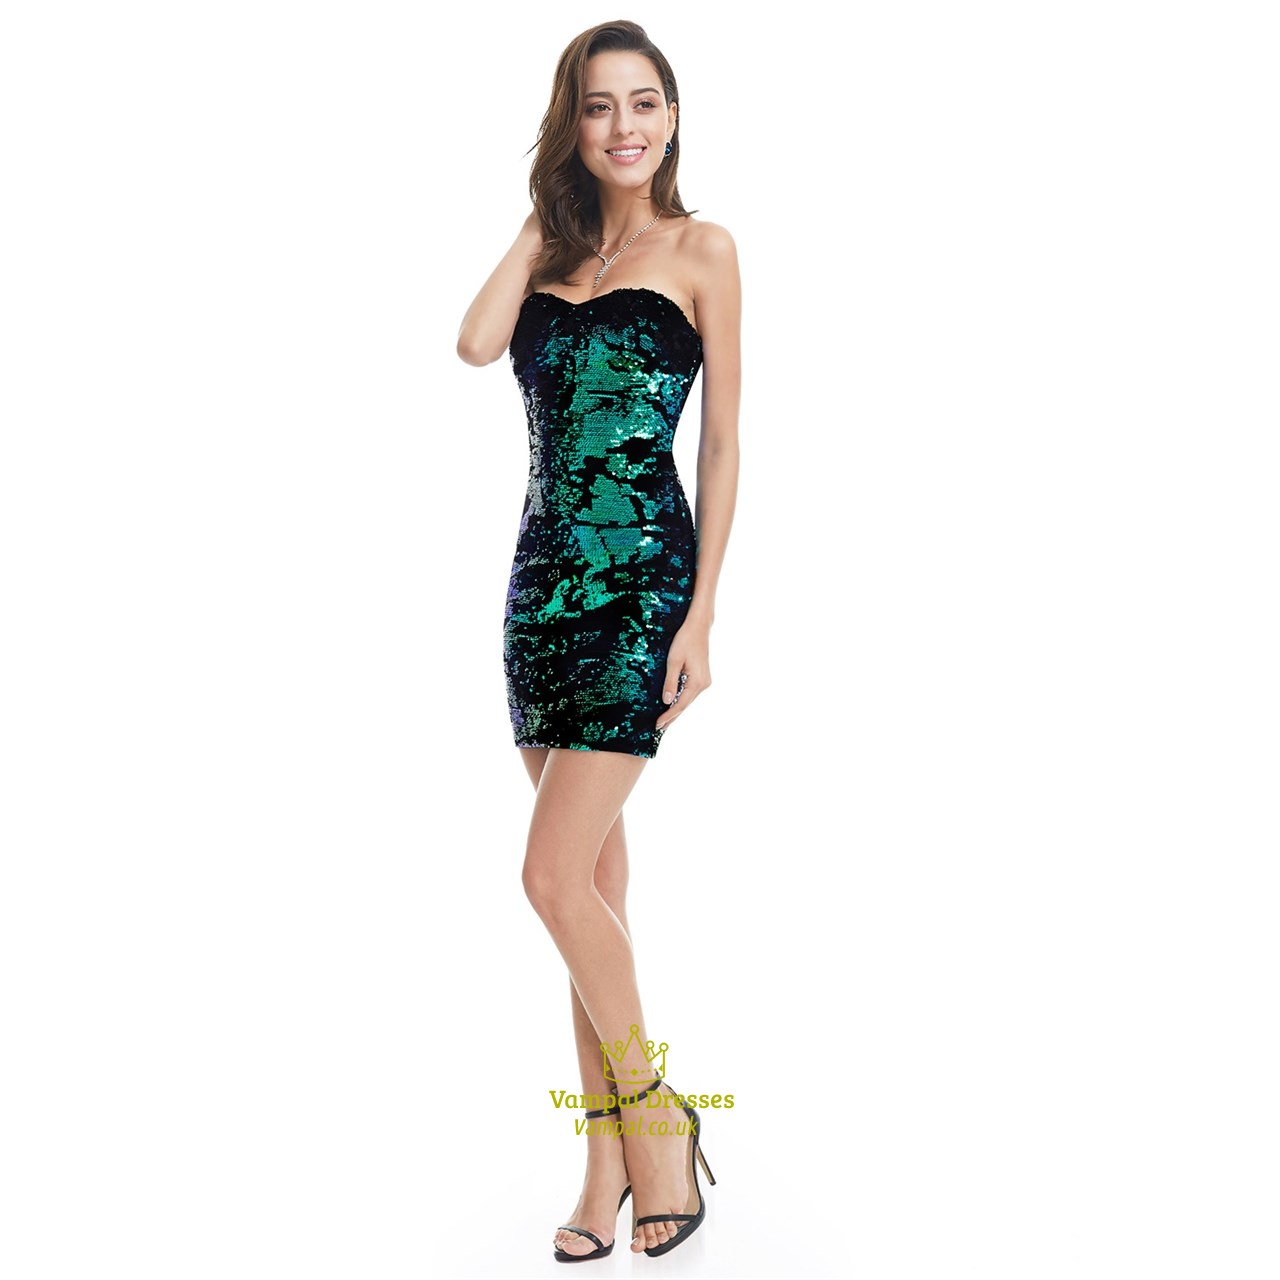 Green Party Dresses: tanzaniasafarisorvicos.ga - Your Online Dresses Store! Get 5% in rewards with Club O! Green; More Options. Quick View Evanese Women's Slip On Elegant Cocktail Short Dress with Shoulder Bands. SALE ends in 1 day. Quick View. Sale $